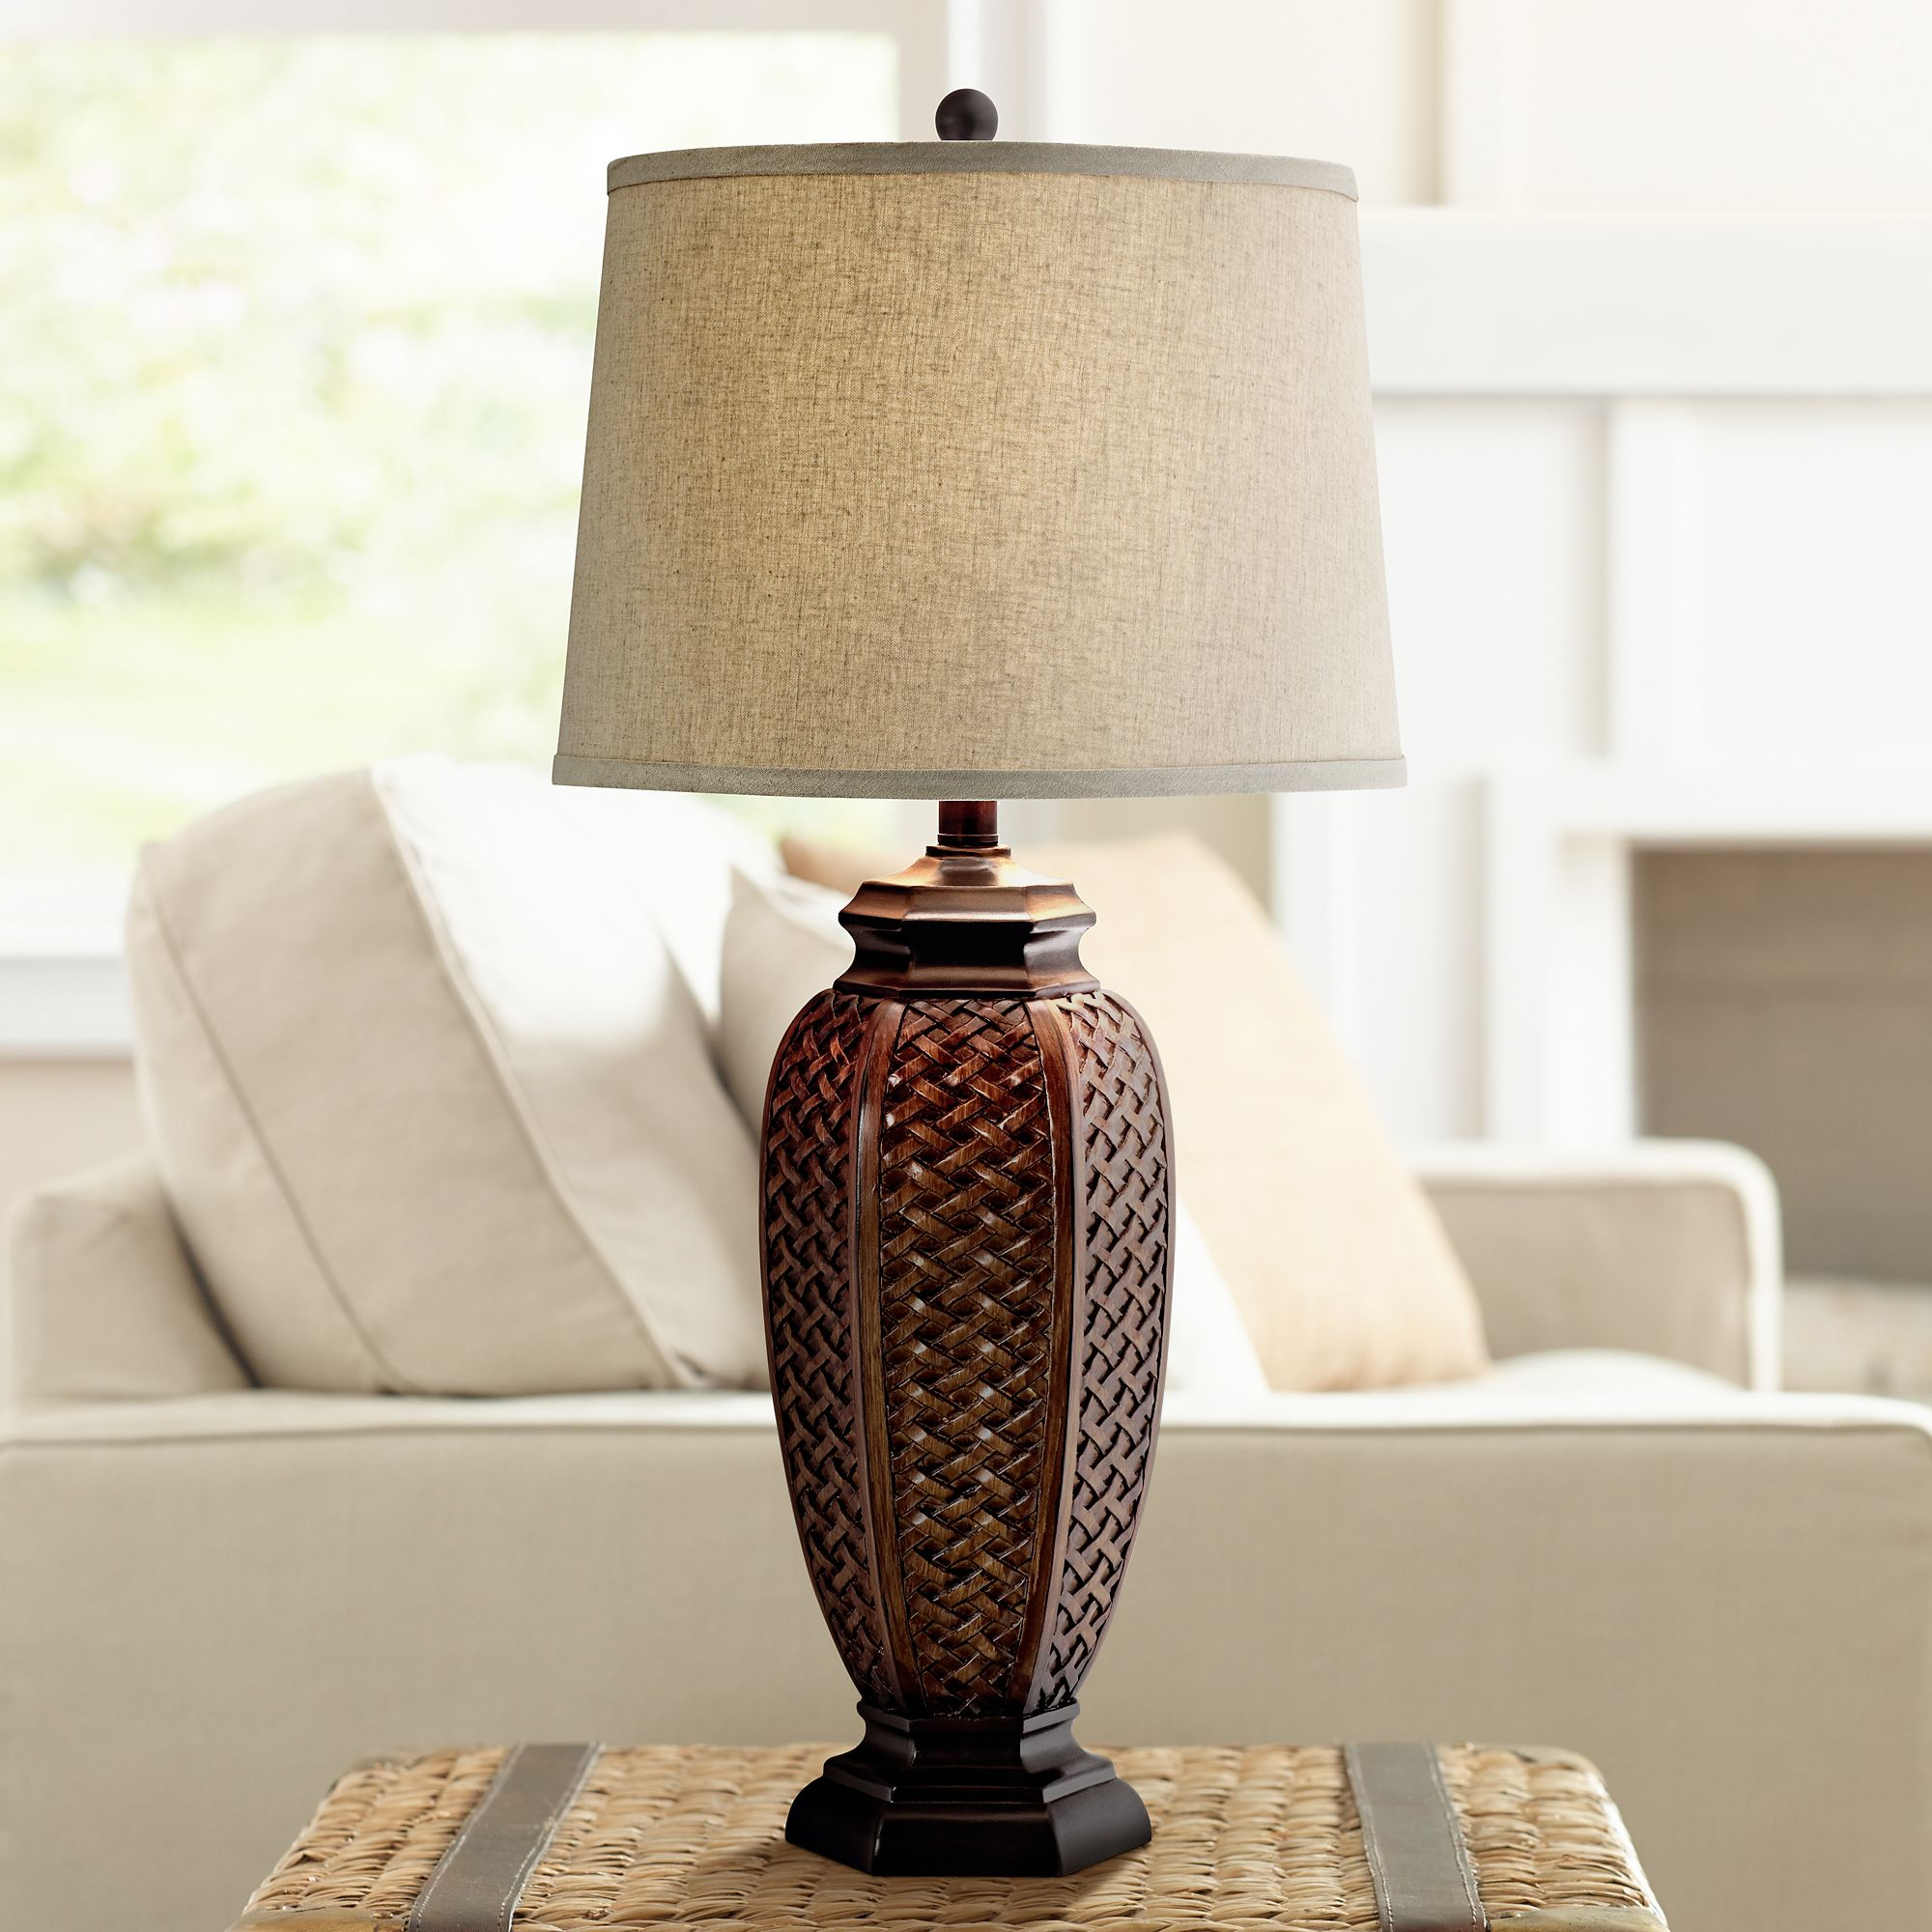 Delightful Faux Wicker Jar Table Lamp